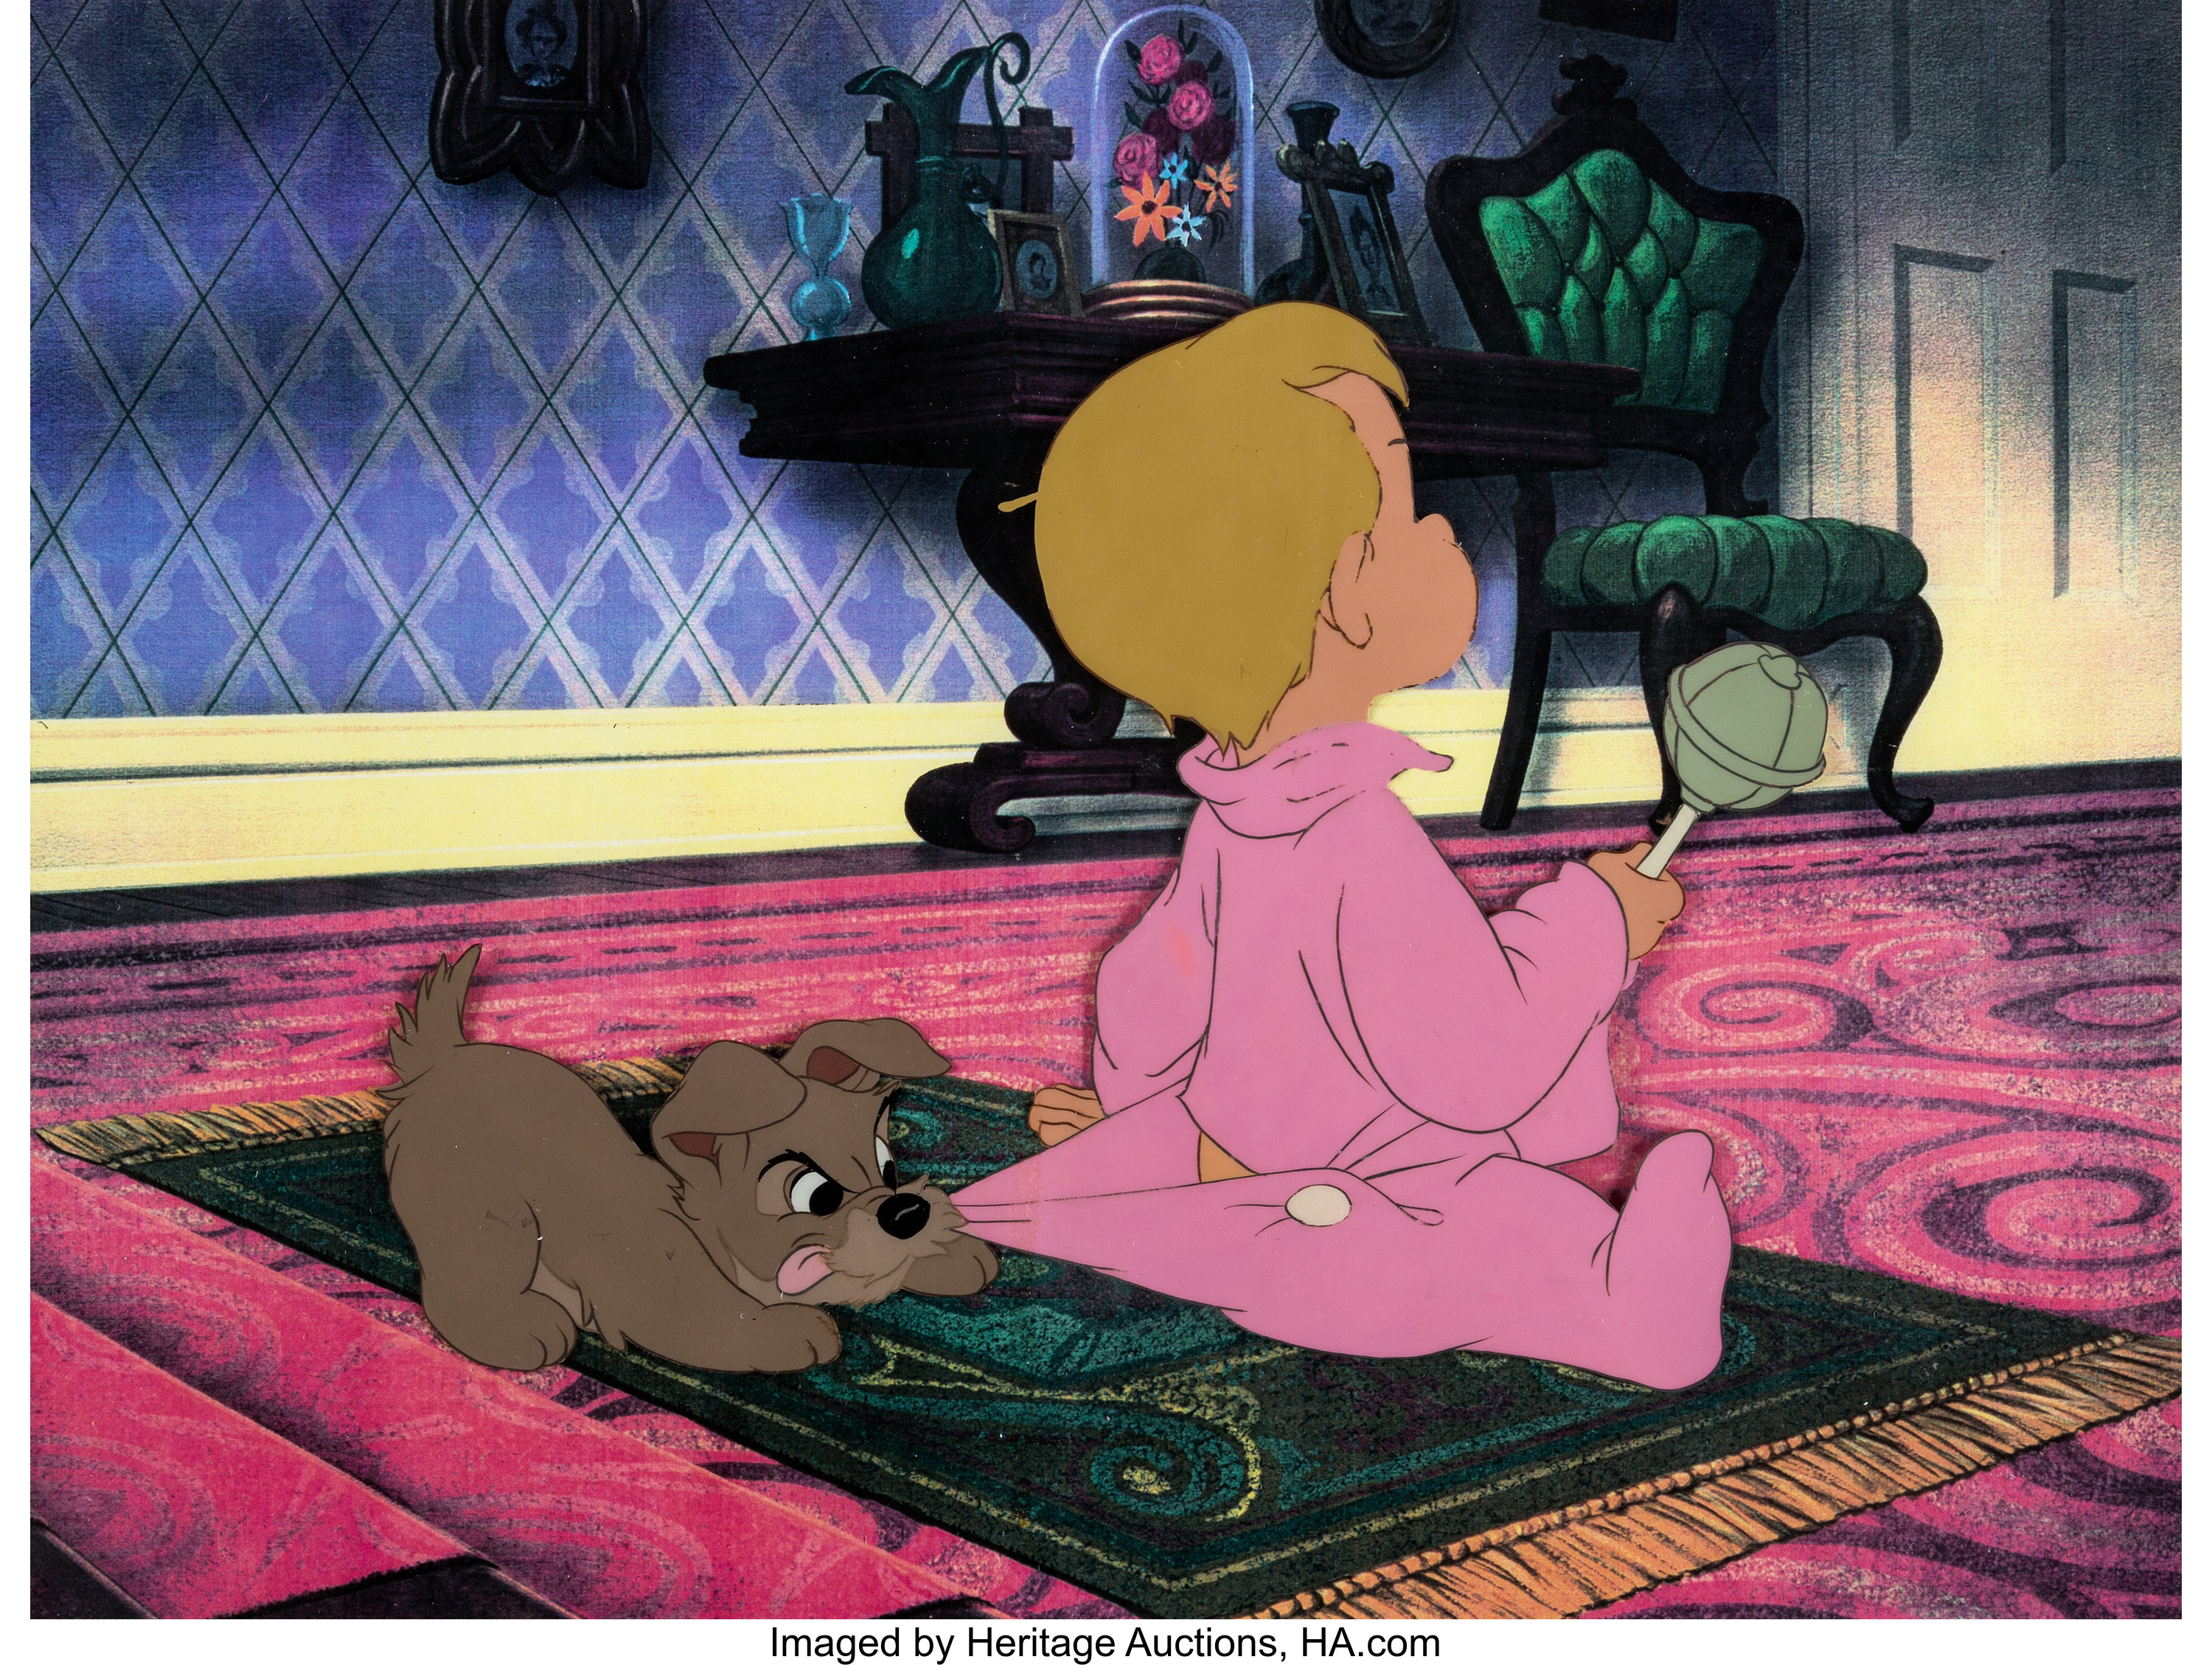 Lady And The Tramp Scamp And Baby Dear Production Cel Walt Disney Lot 97198 Heritage Auctions